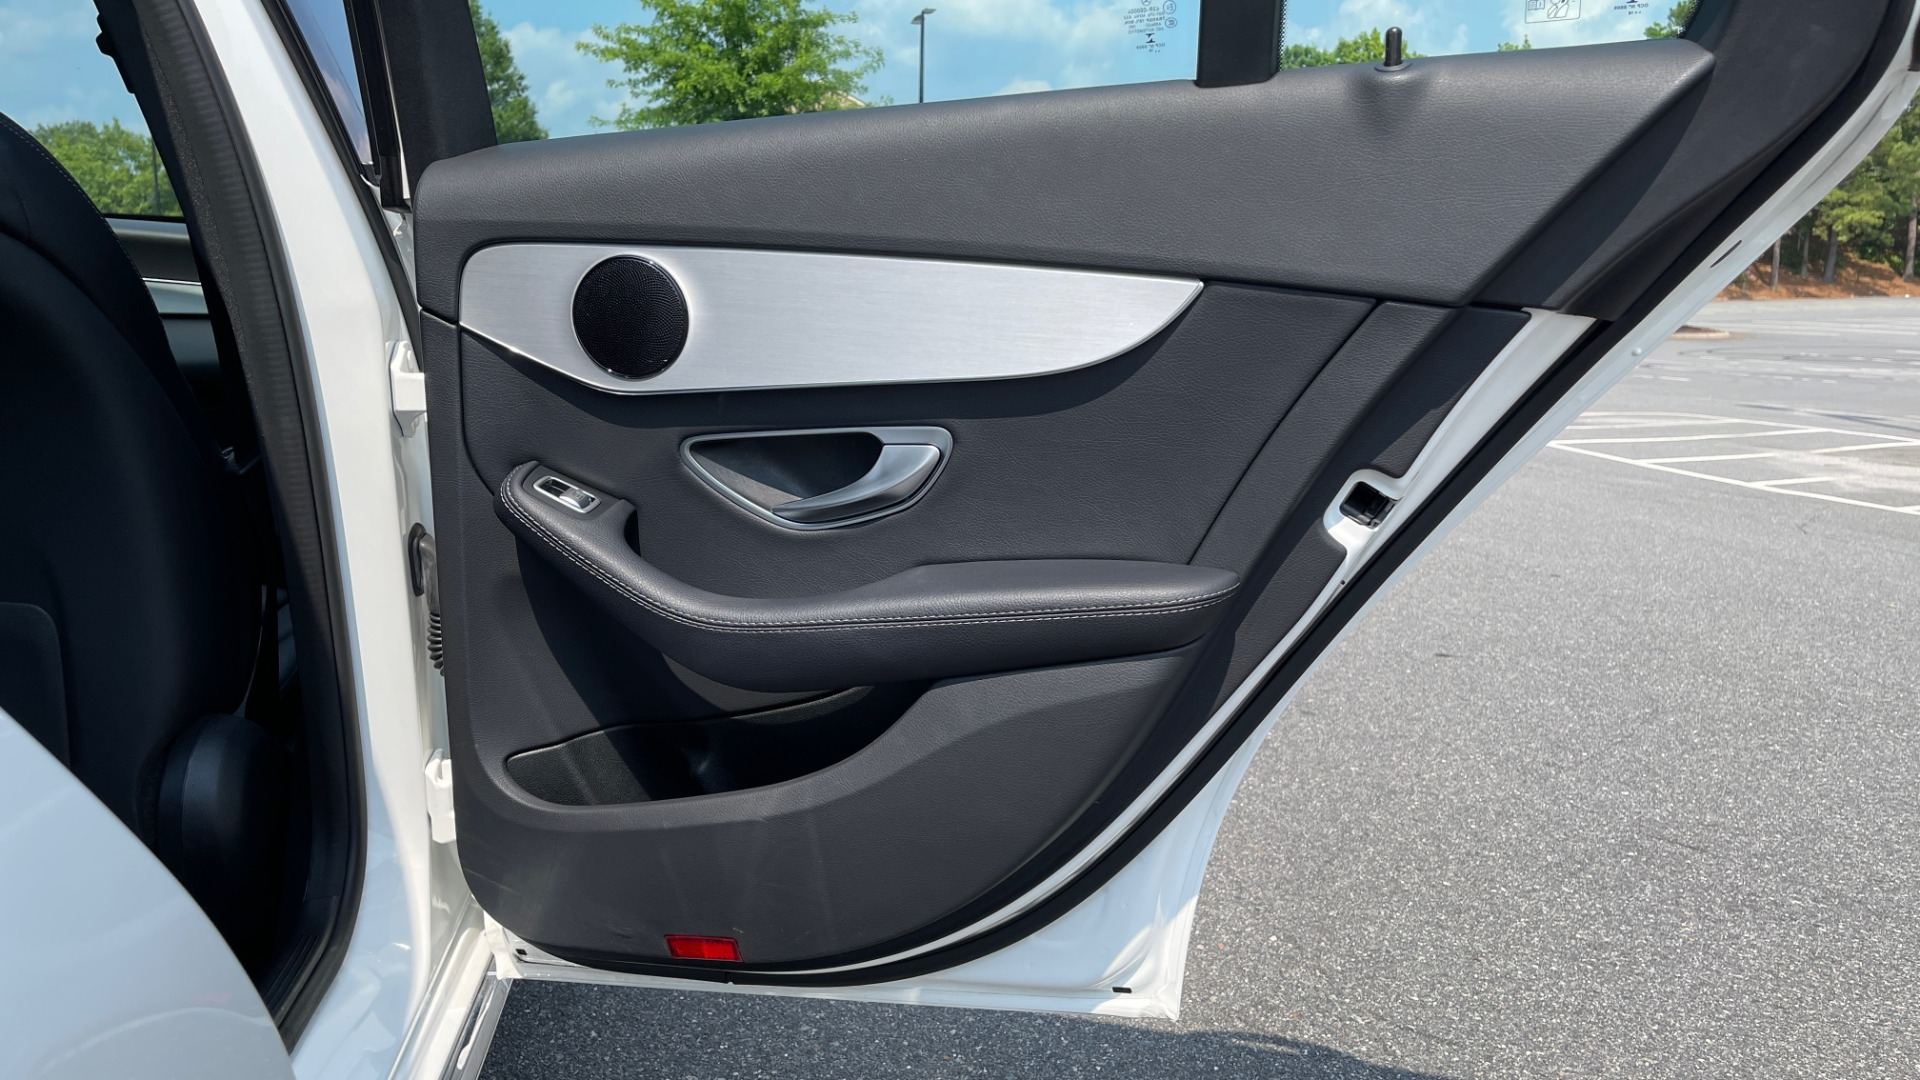 Used 2018 Mercedes-Benz C-CLASS C 300 / 2.0L / RWD / SUNROOF / APPLE~ANDROID / REARVIEW for sale $29,995 at Formula Imports in Charlotte NC 28227 52